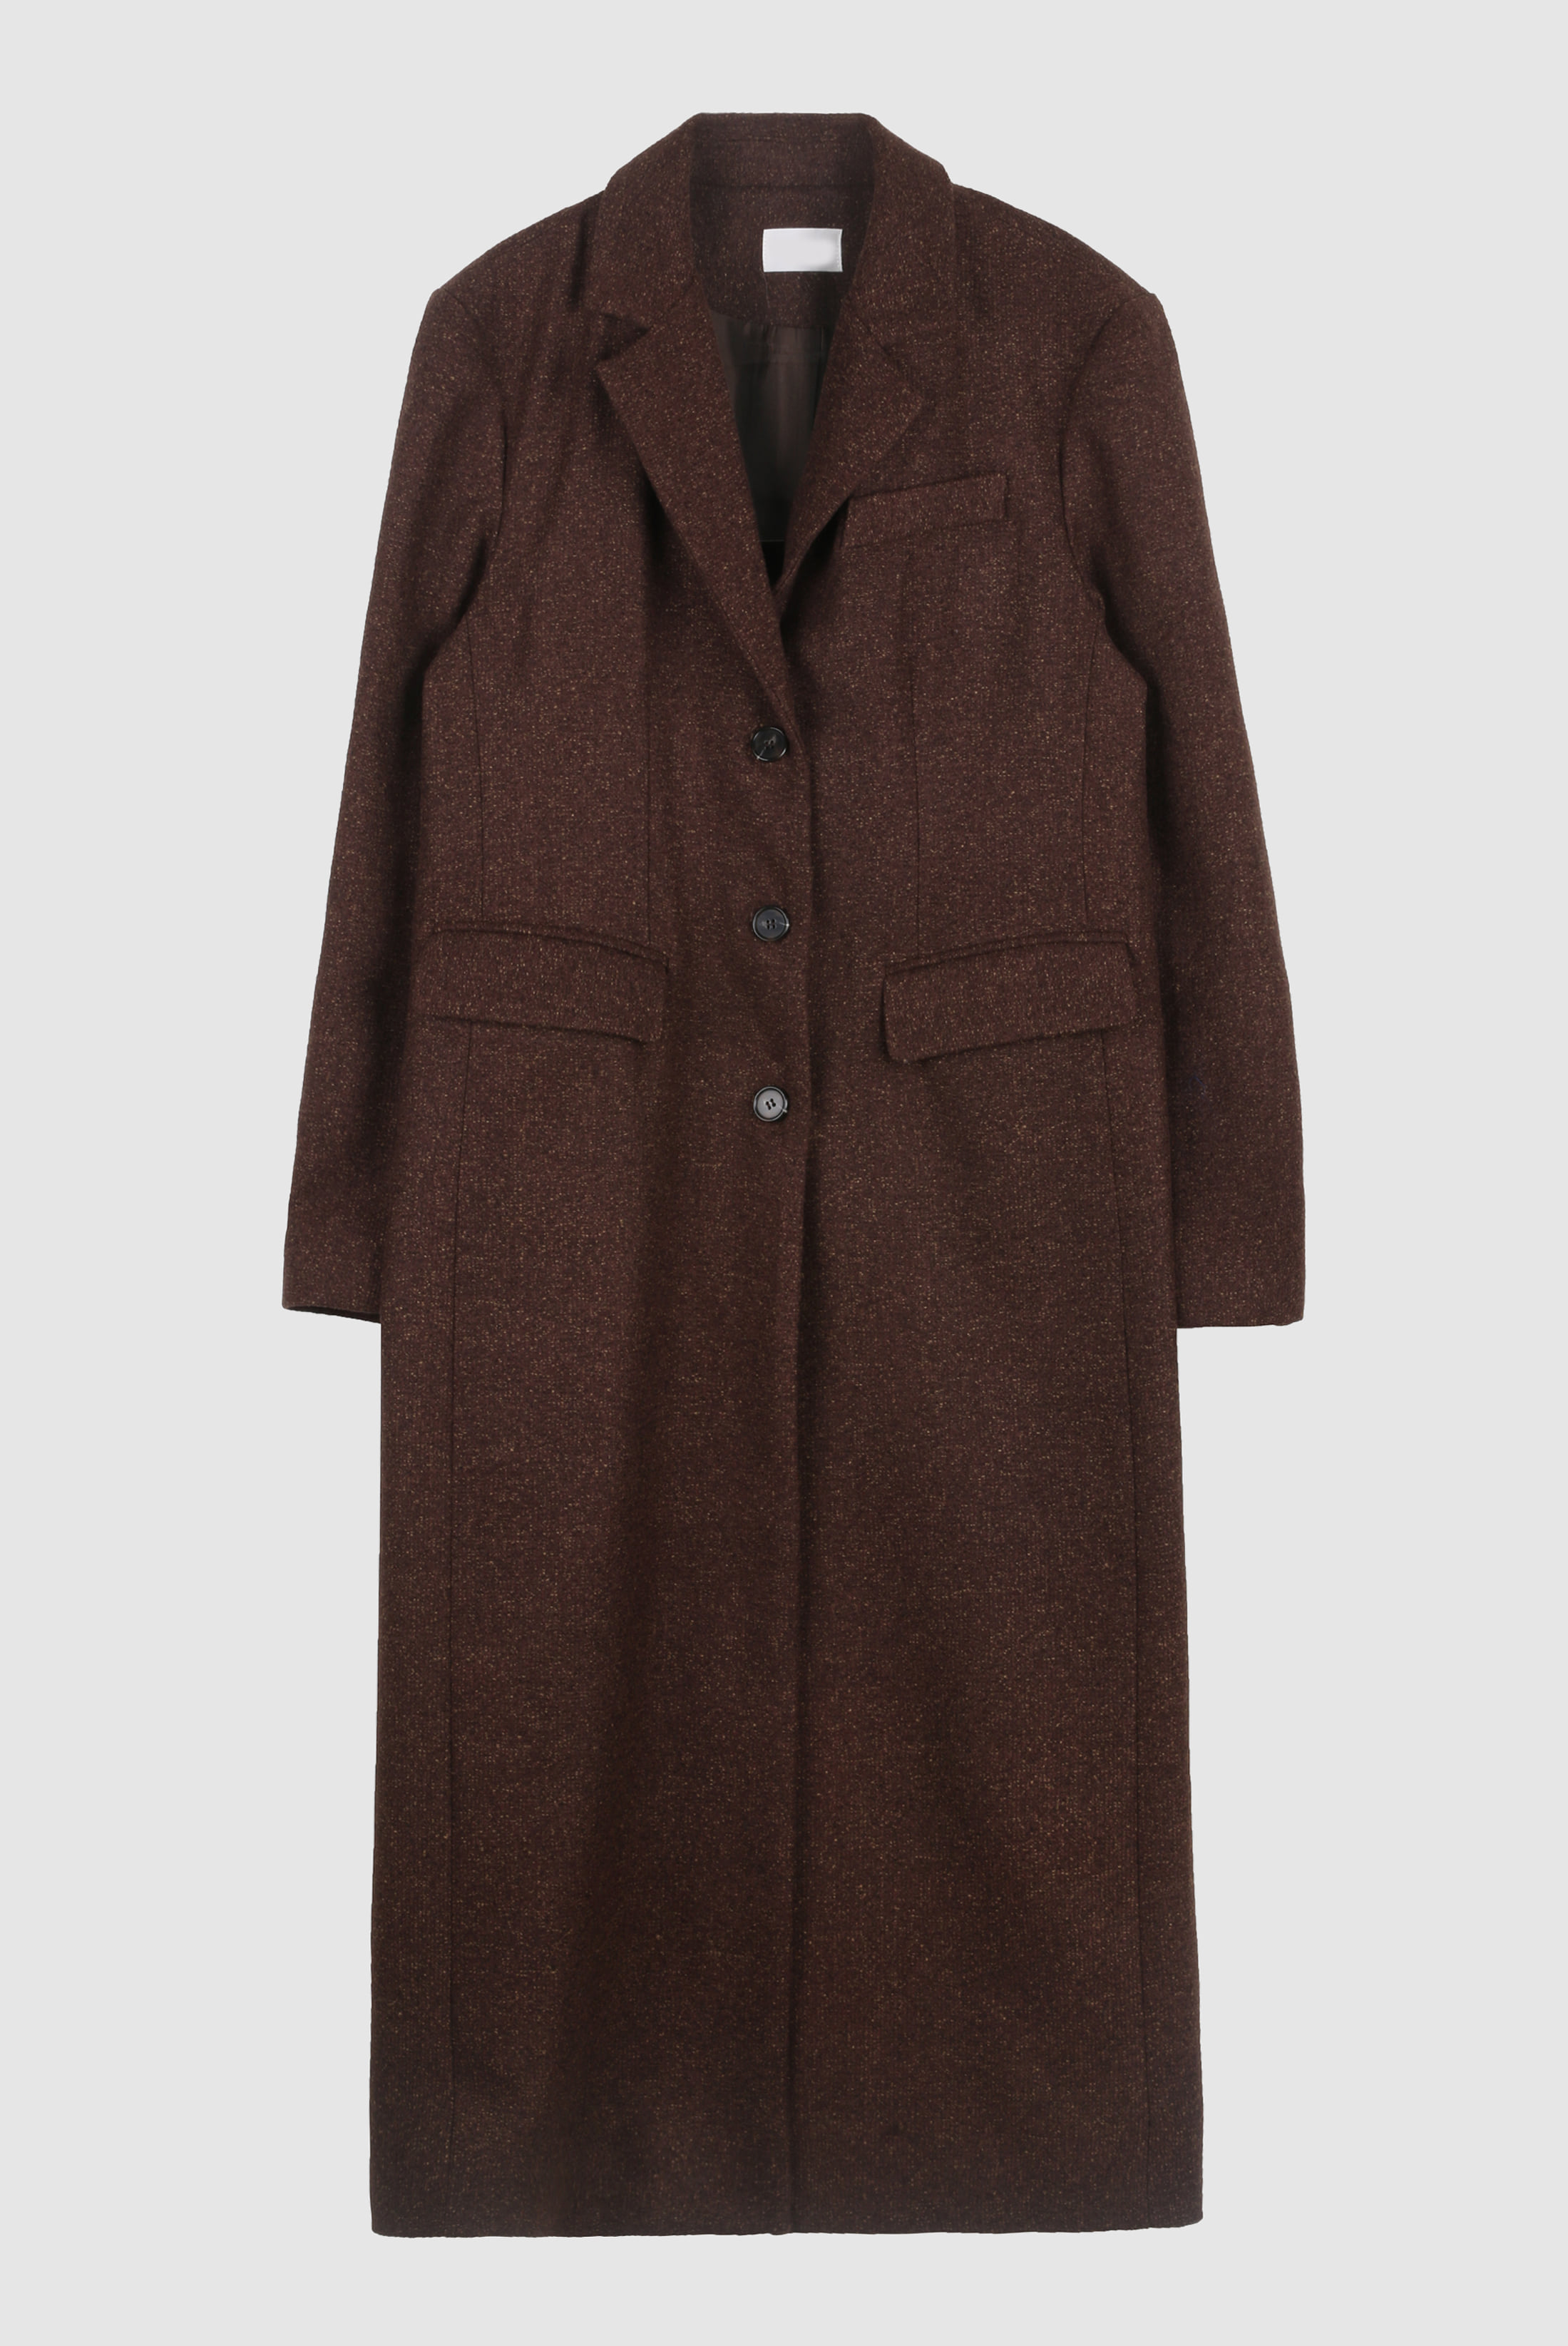 (W) Classic_Tweed Long_Coat